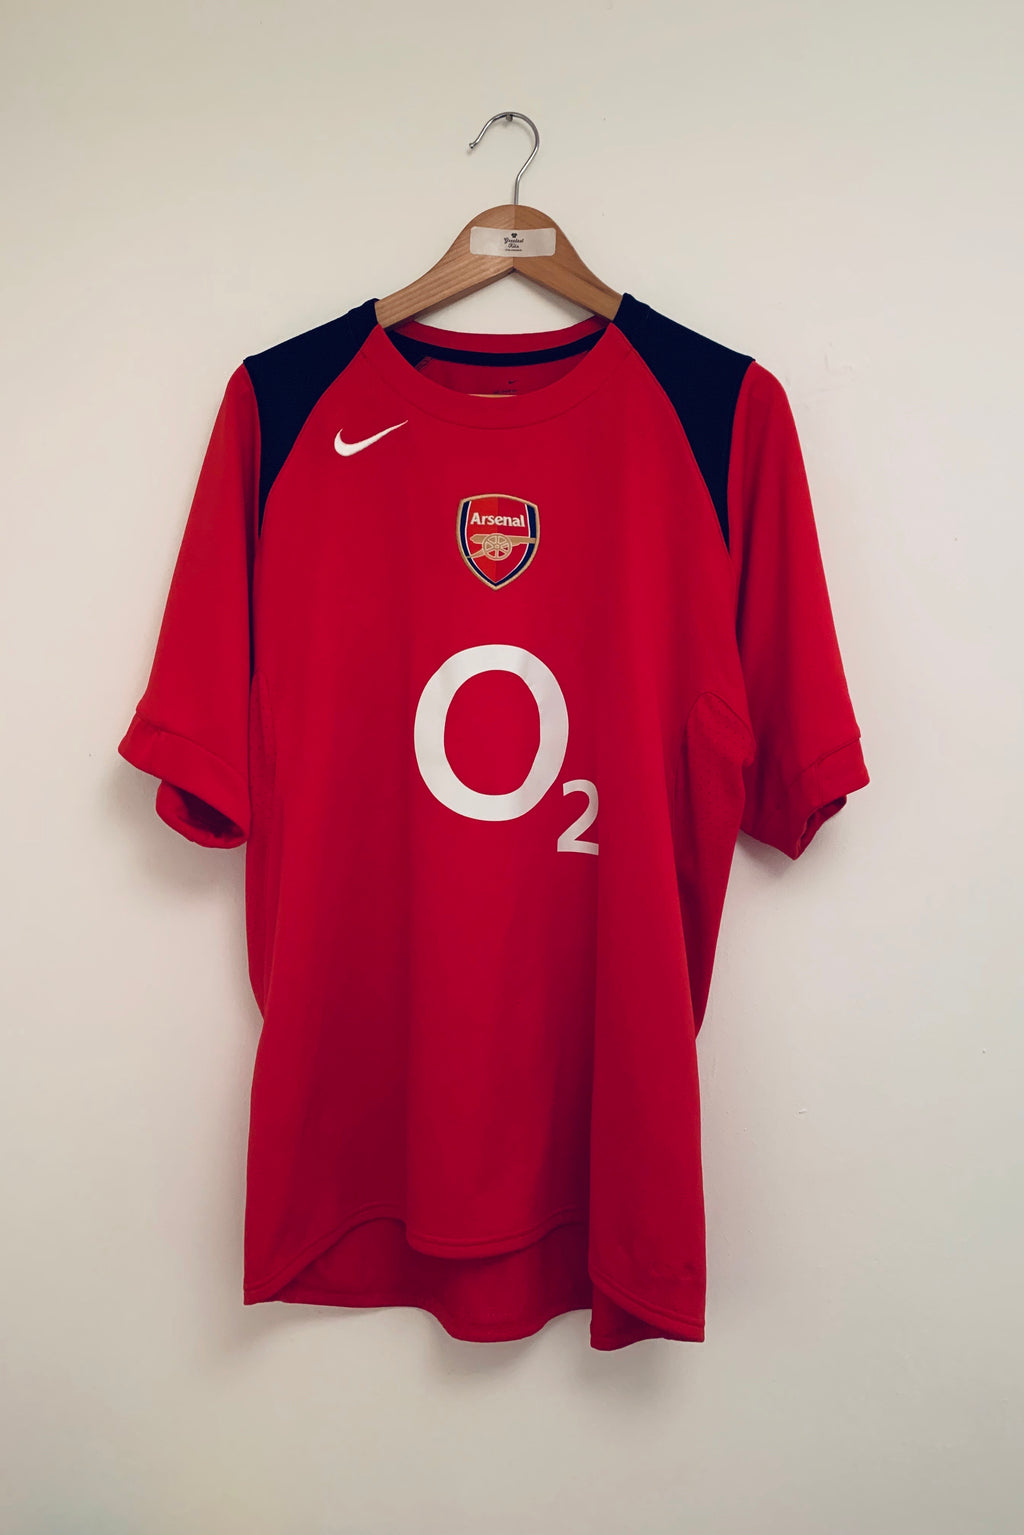 2004/05 Arsenal Training Shirt (L) 9.5/10